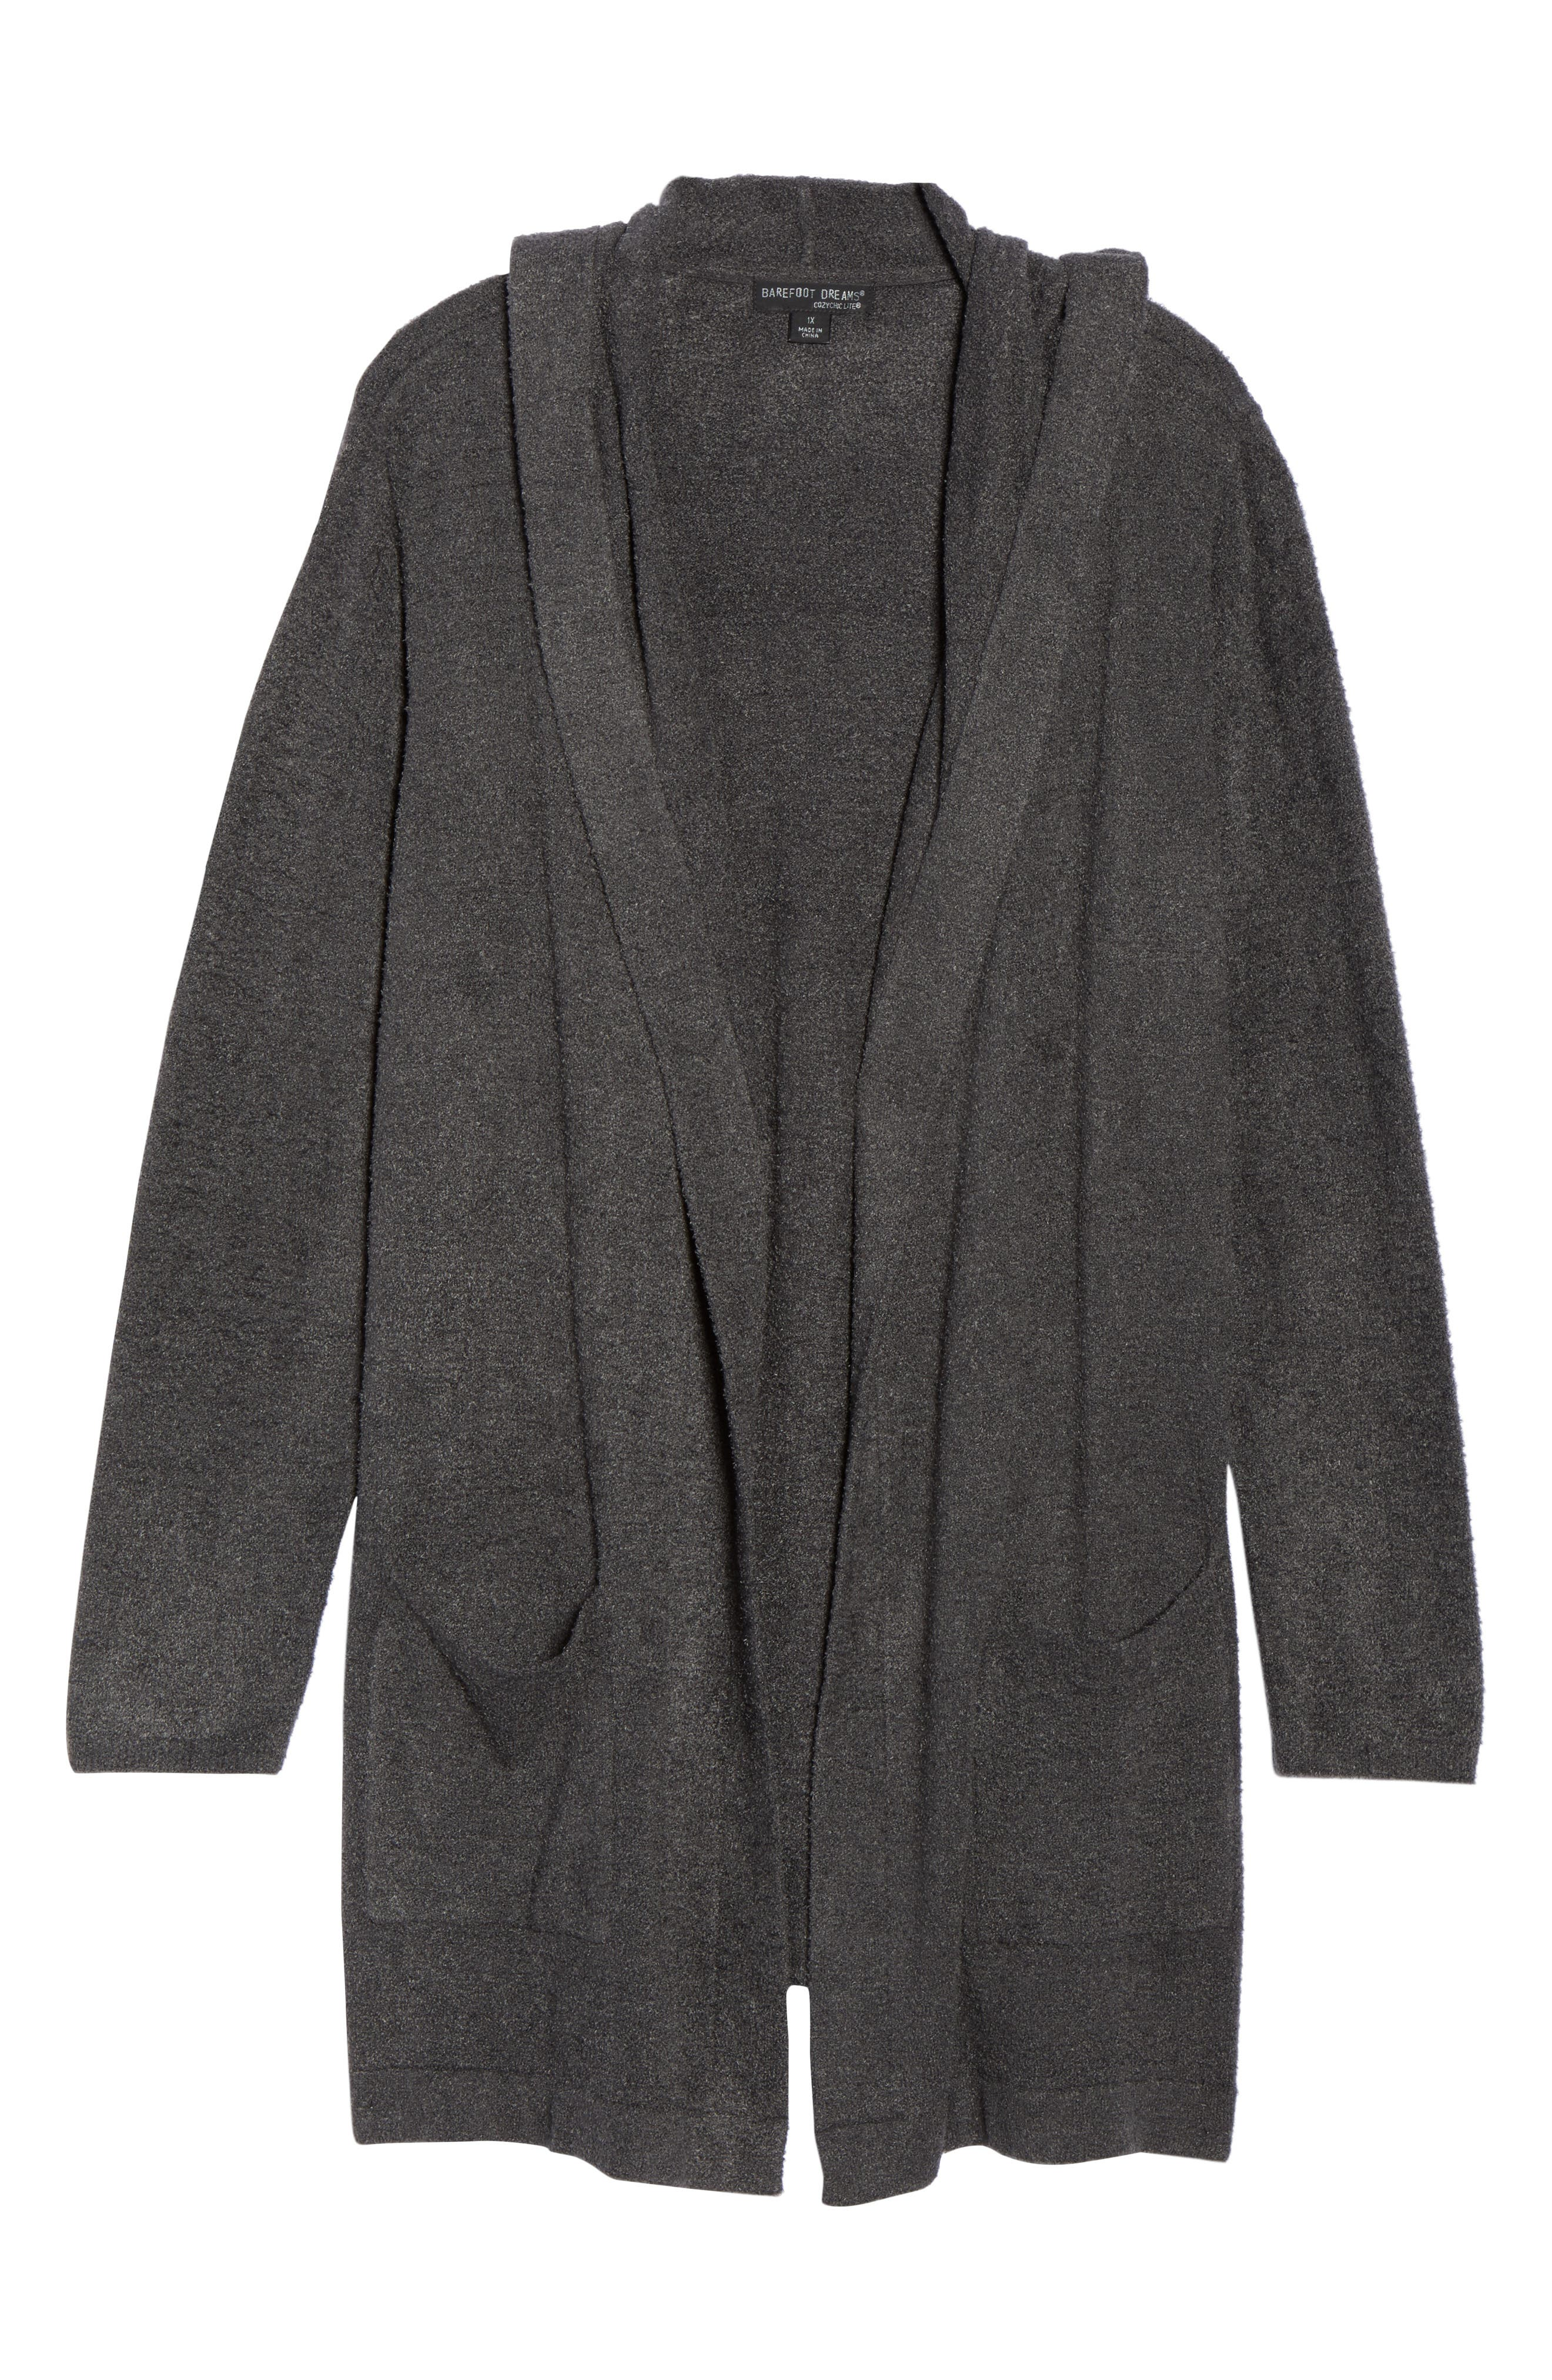 BAREFOOT DREAMS<SUP>®</SUP>, Cozychic Lite<sup>®</sup> Coastal Hooded Cardigan, Alternate thumbnail 6, color, CARBON